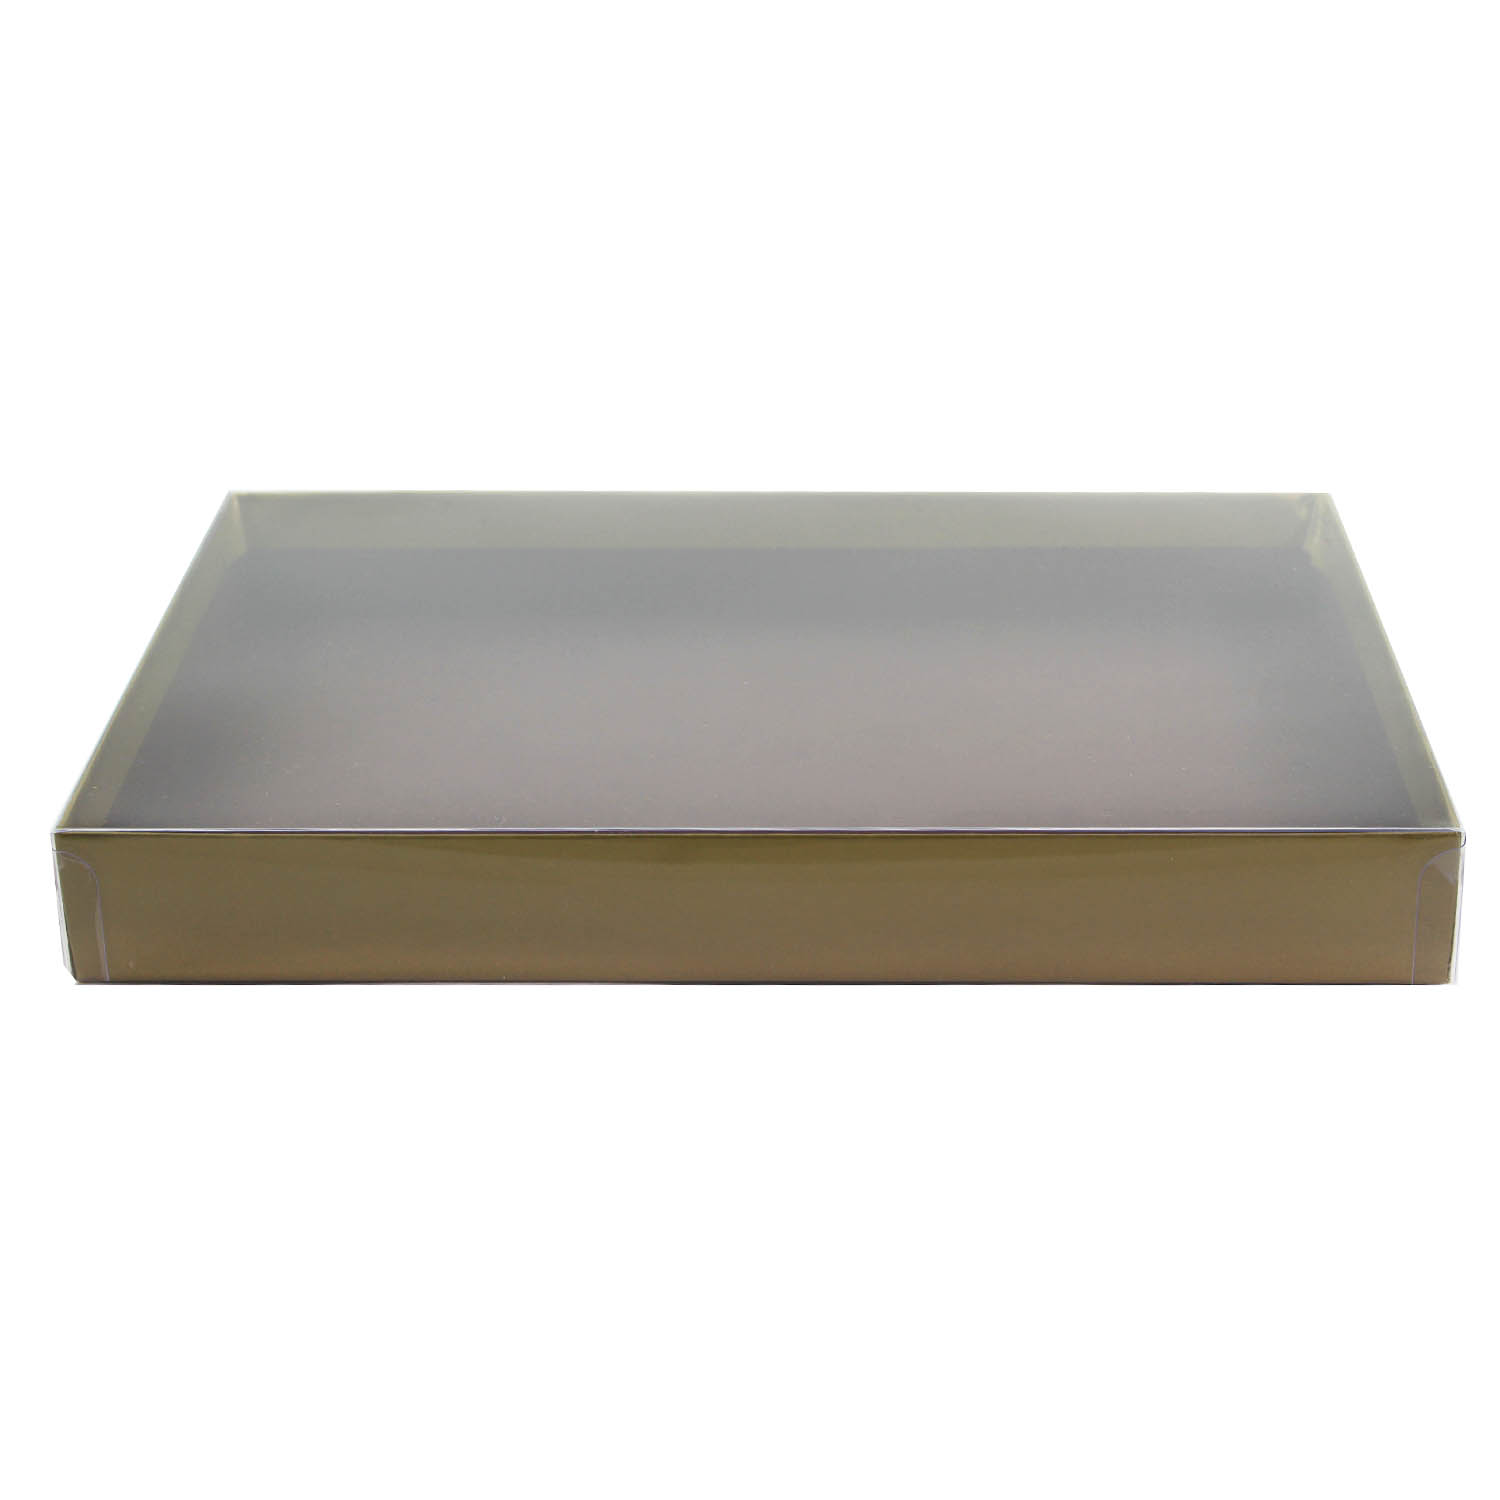 1 lb. Gold Candy Box with Clear Lid